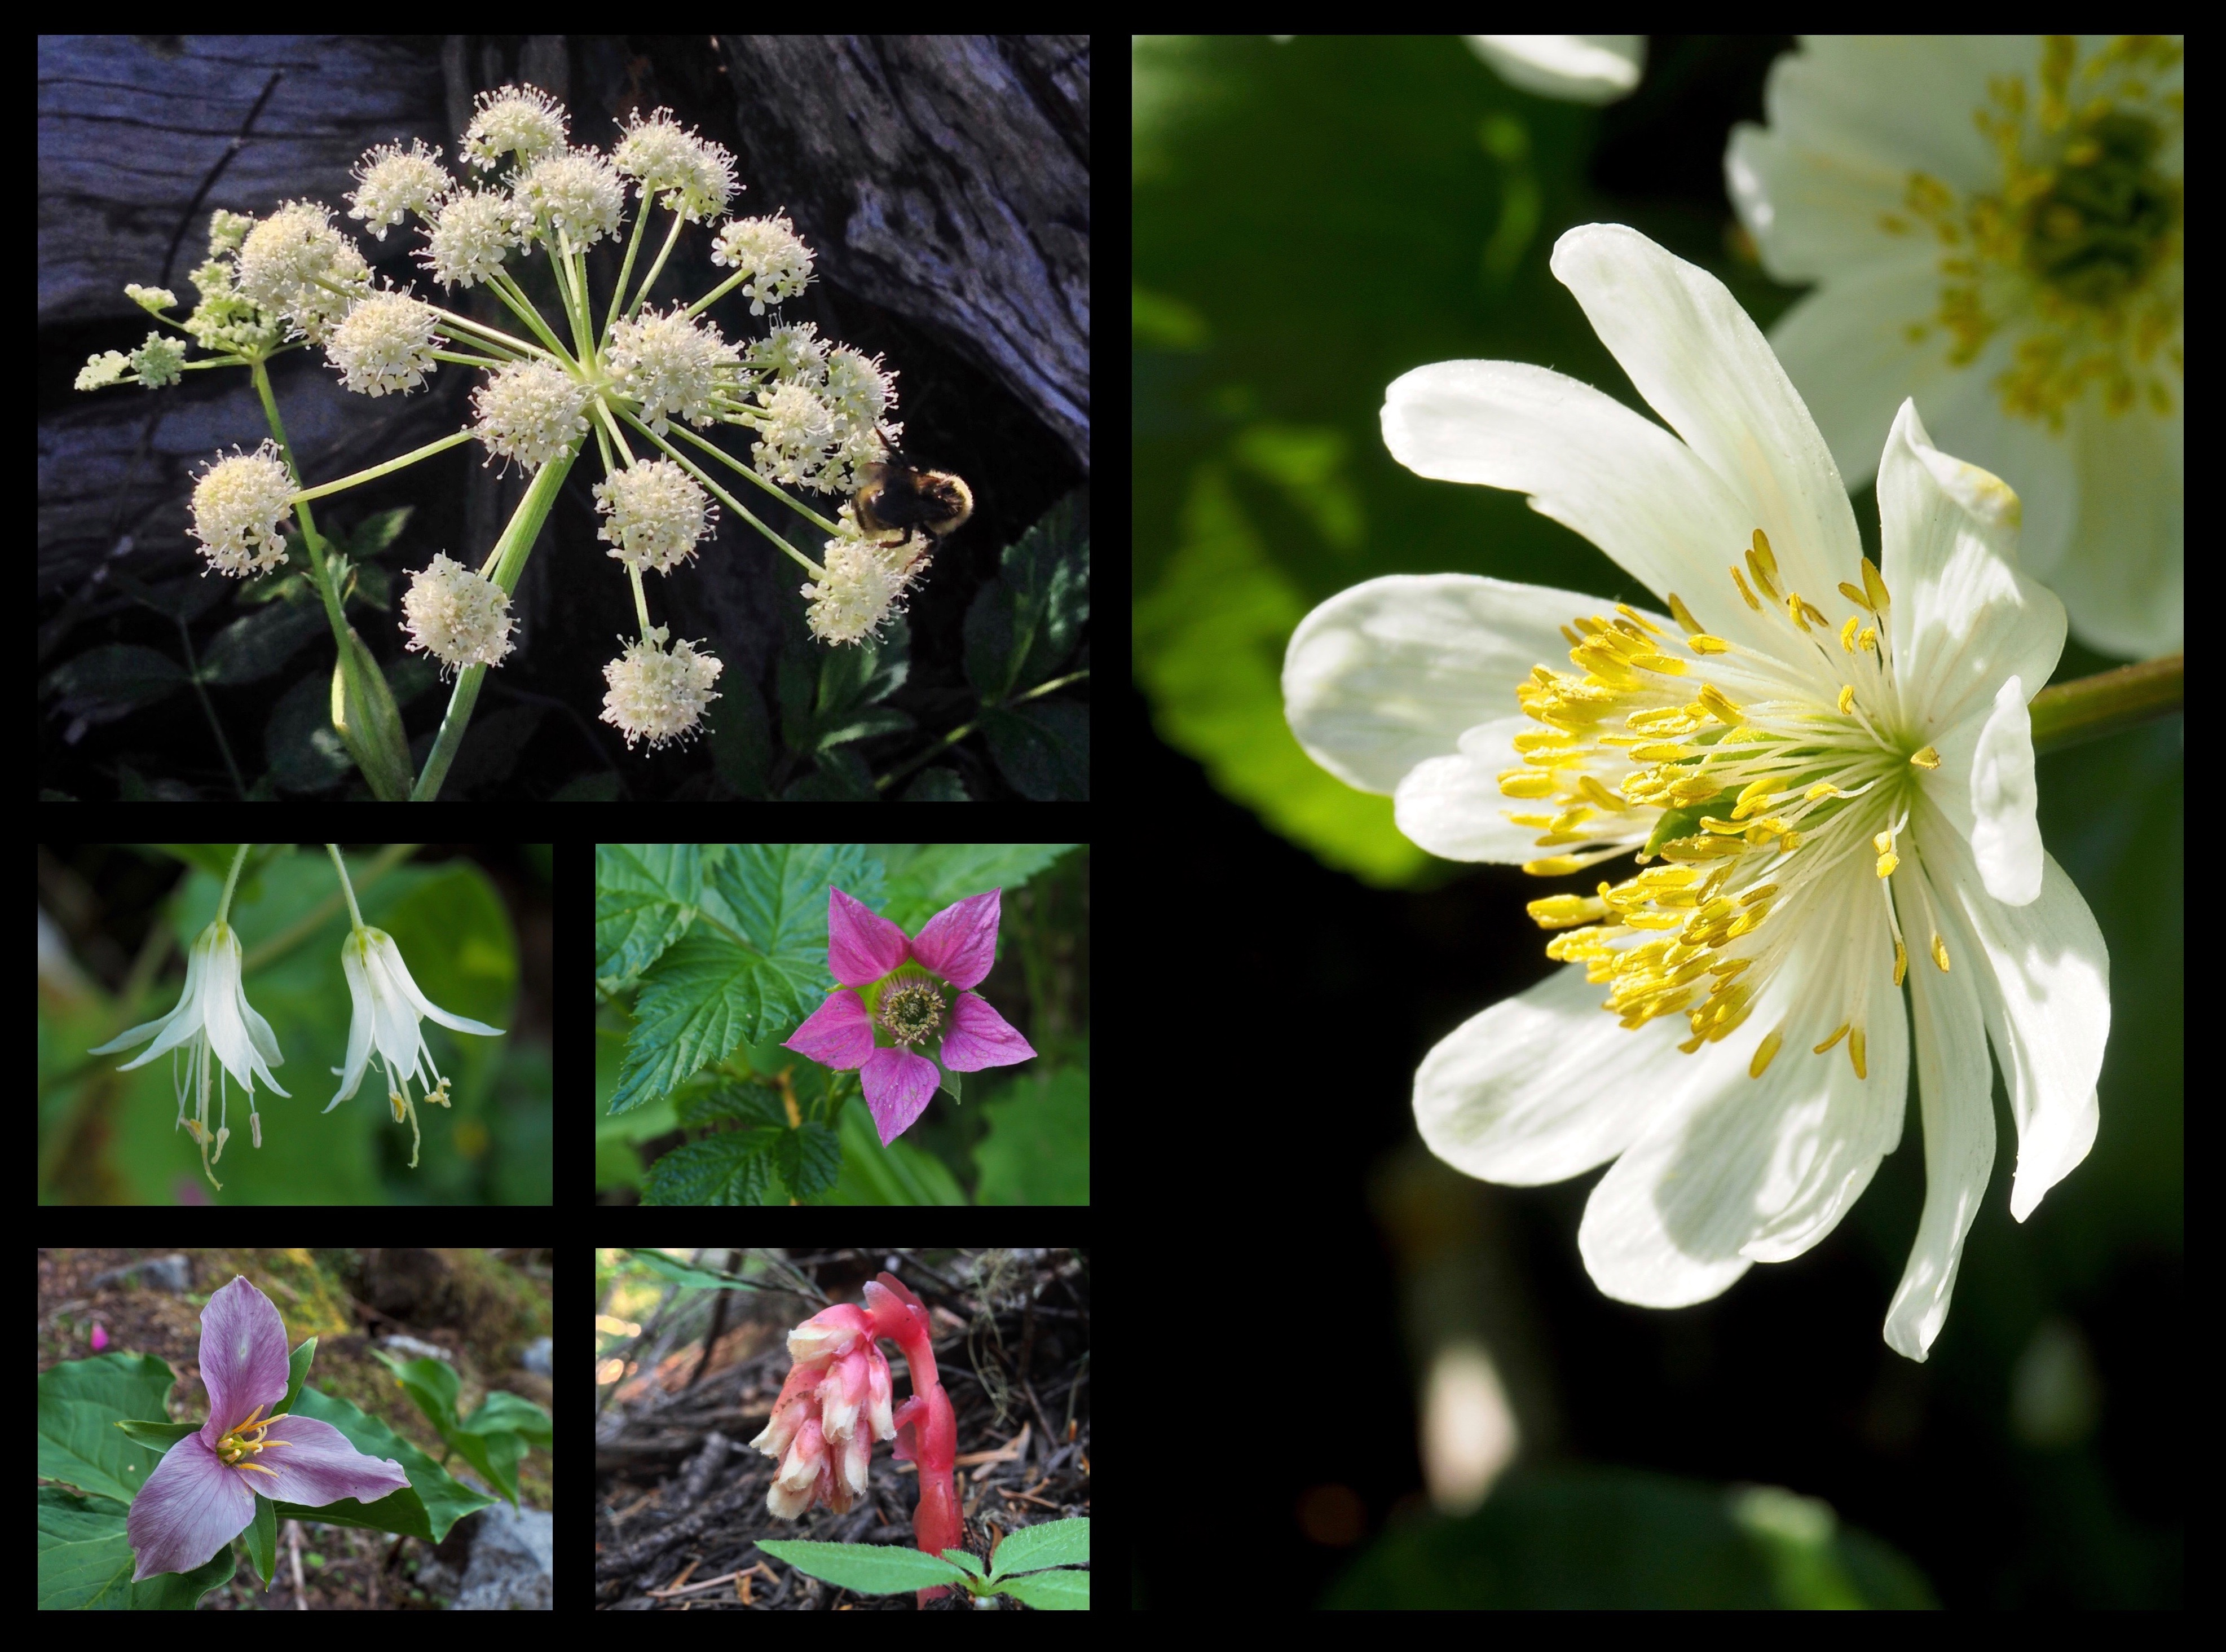 Wildflowers are especially abundant along the trail in the early spring and continuing through summer, including sharptooth, or, Lyall's angelicas (Angelica arguta) (top left), Hooker's fairy bells (Prosartes hookeri) (center left), salmonberries (Rubus spectabilis) (center), Pacific trilliums (Trillium ovatum) (lower left), pinesaps (Monotropa hypopitys a.k.a. Hypopitys monotropa) (lower center), and white marsh marigolds (Caltha leptosepala) (right). Melakwa - Pratt Lake Traverse, June 05, 2016 and August 03, 2014.